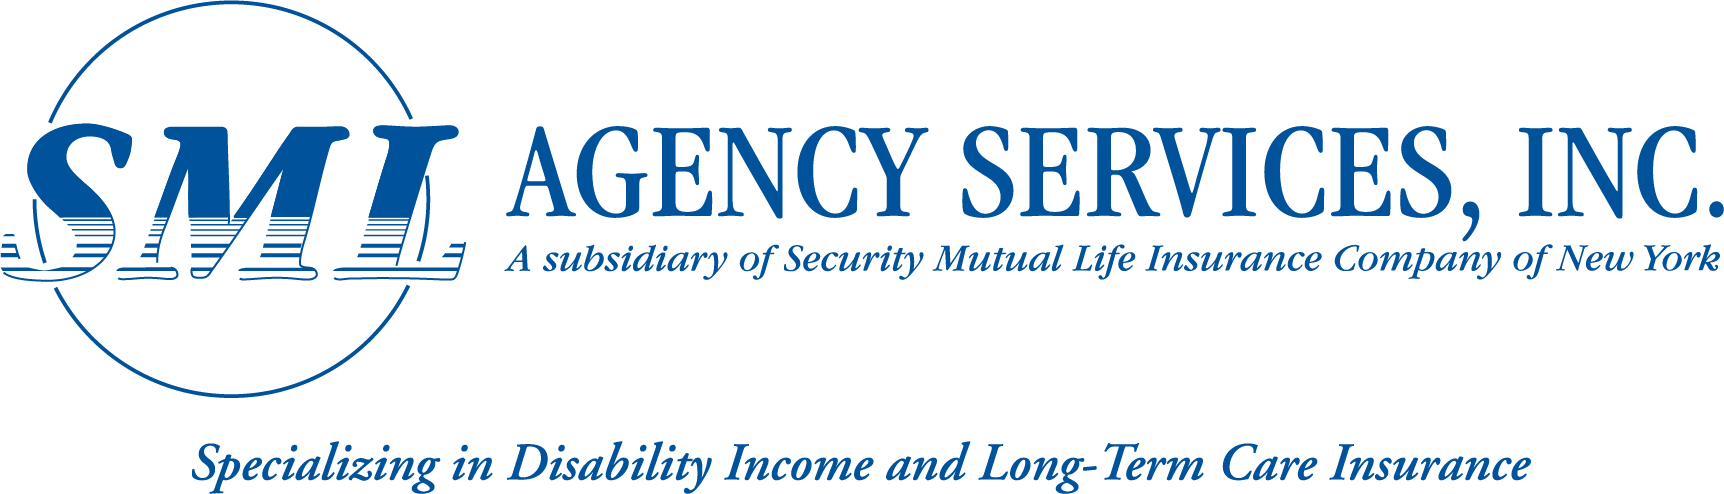 SML Agency Services